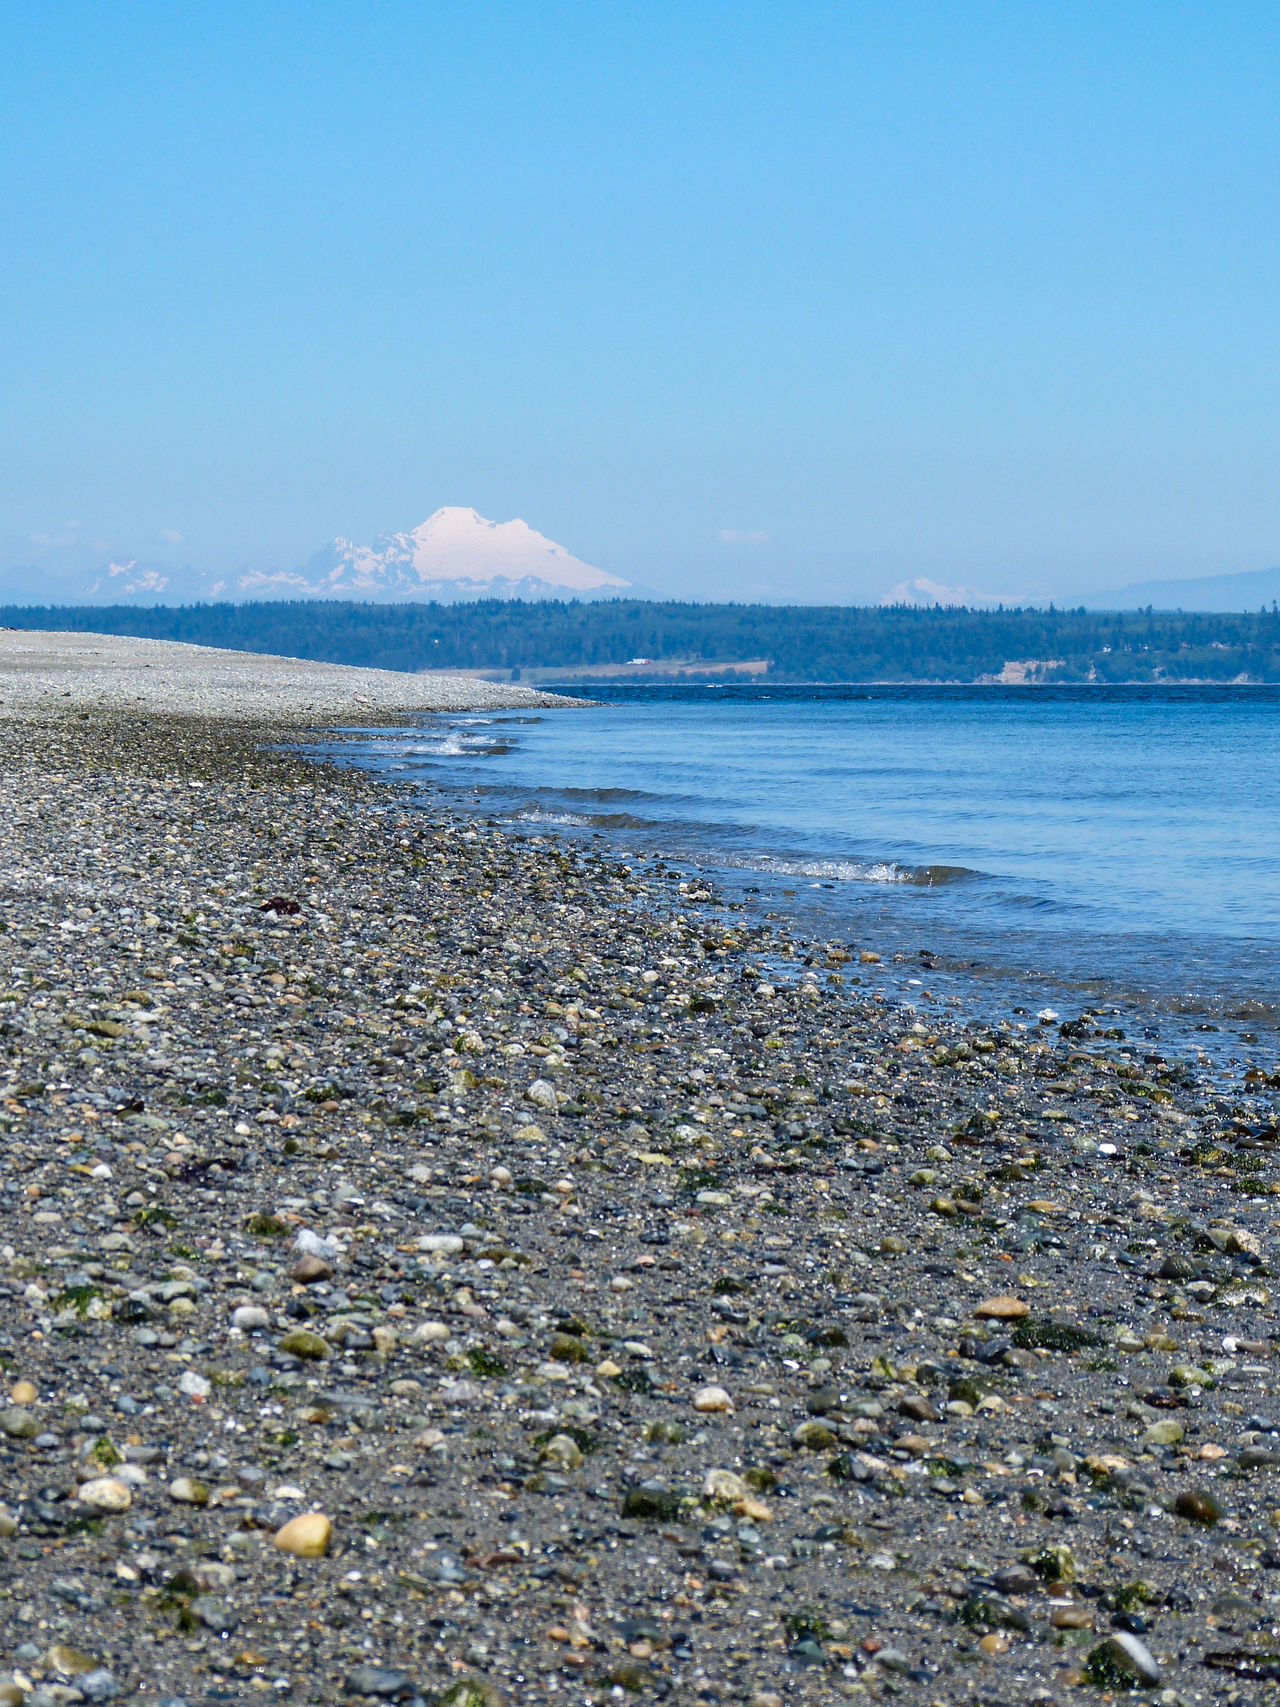 Beach Beach Photography Beachphotography Beauty In Nature Cascade Mountains Day Horizon Over Water Low Angle View Mt. Baker Pebbles Puget Sound Sea Sea And Sky Shore Water